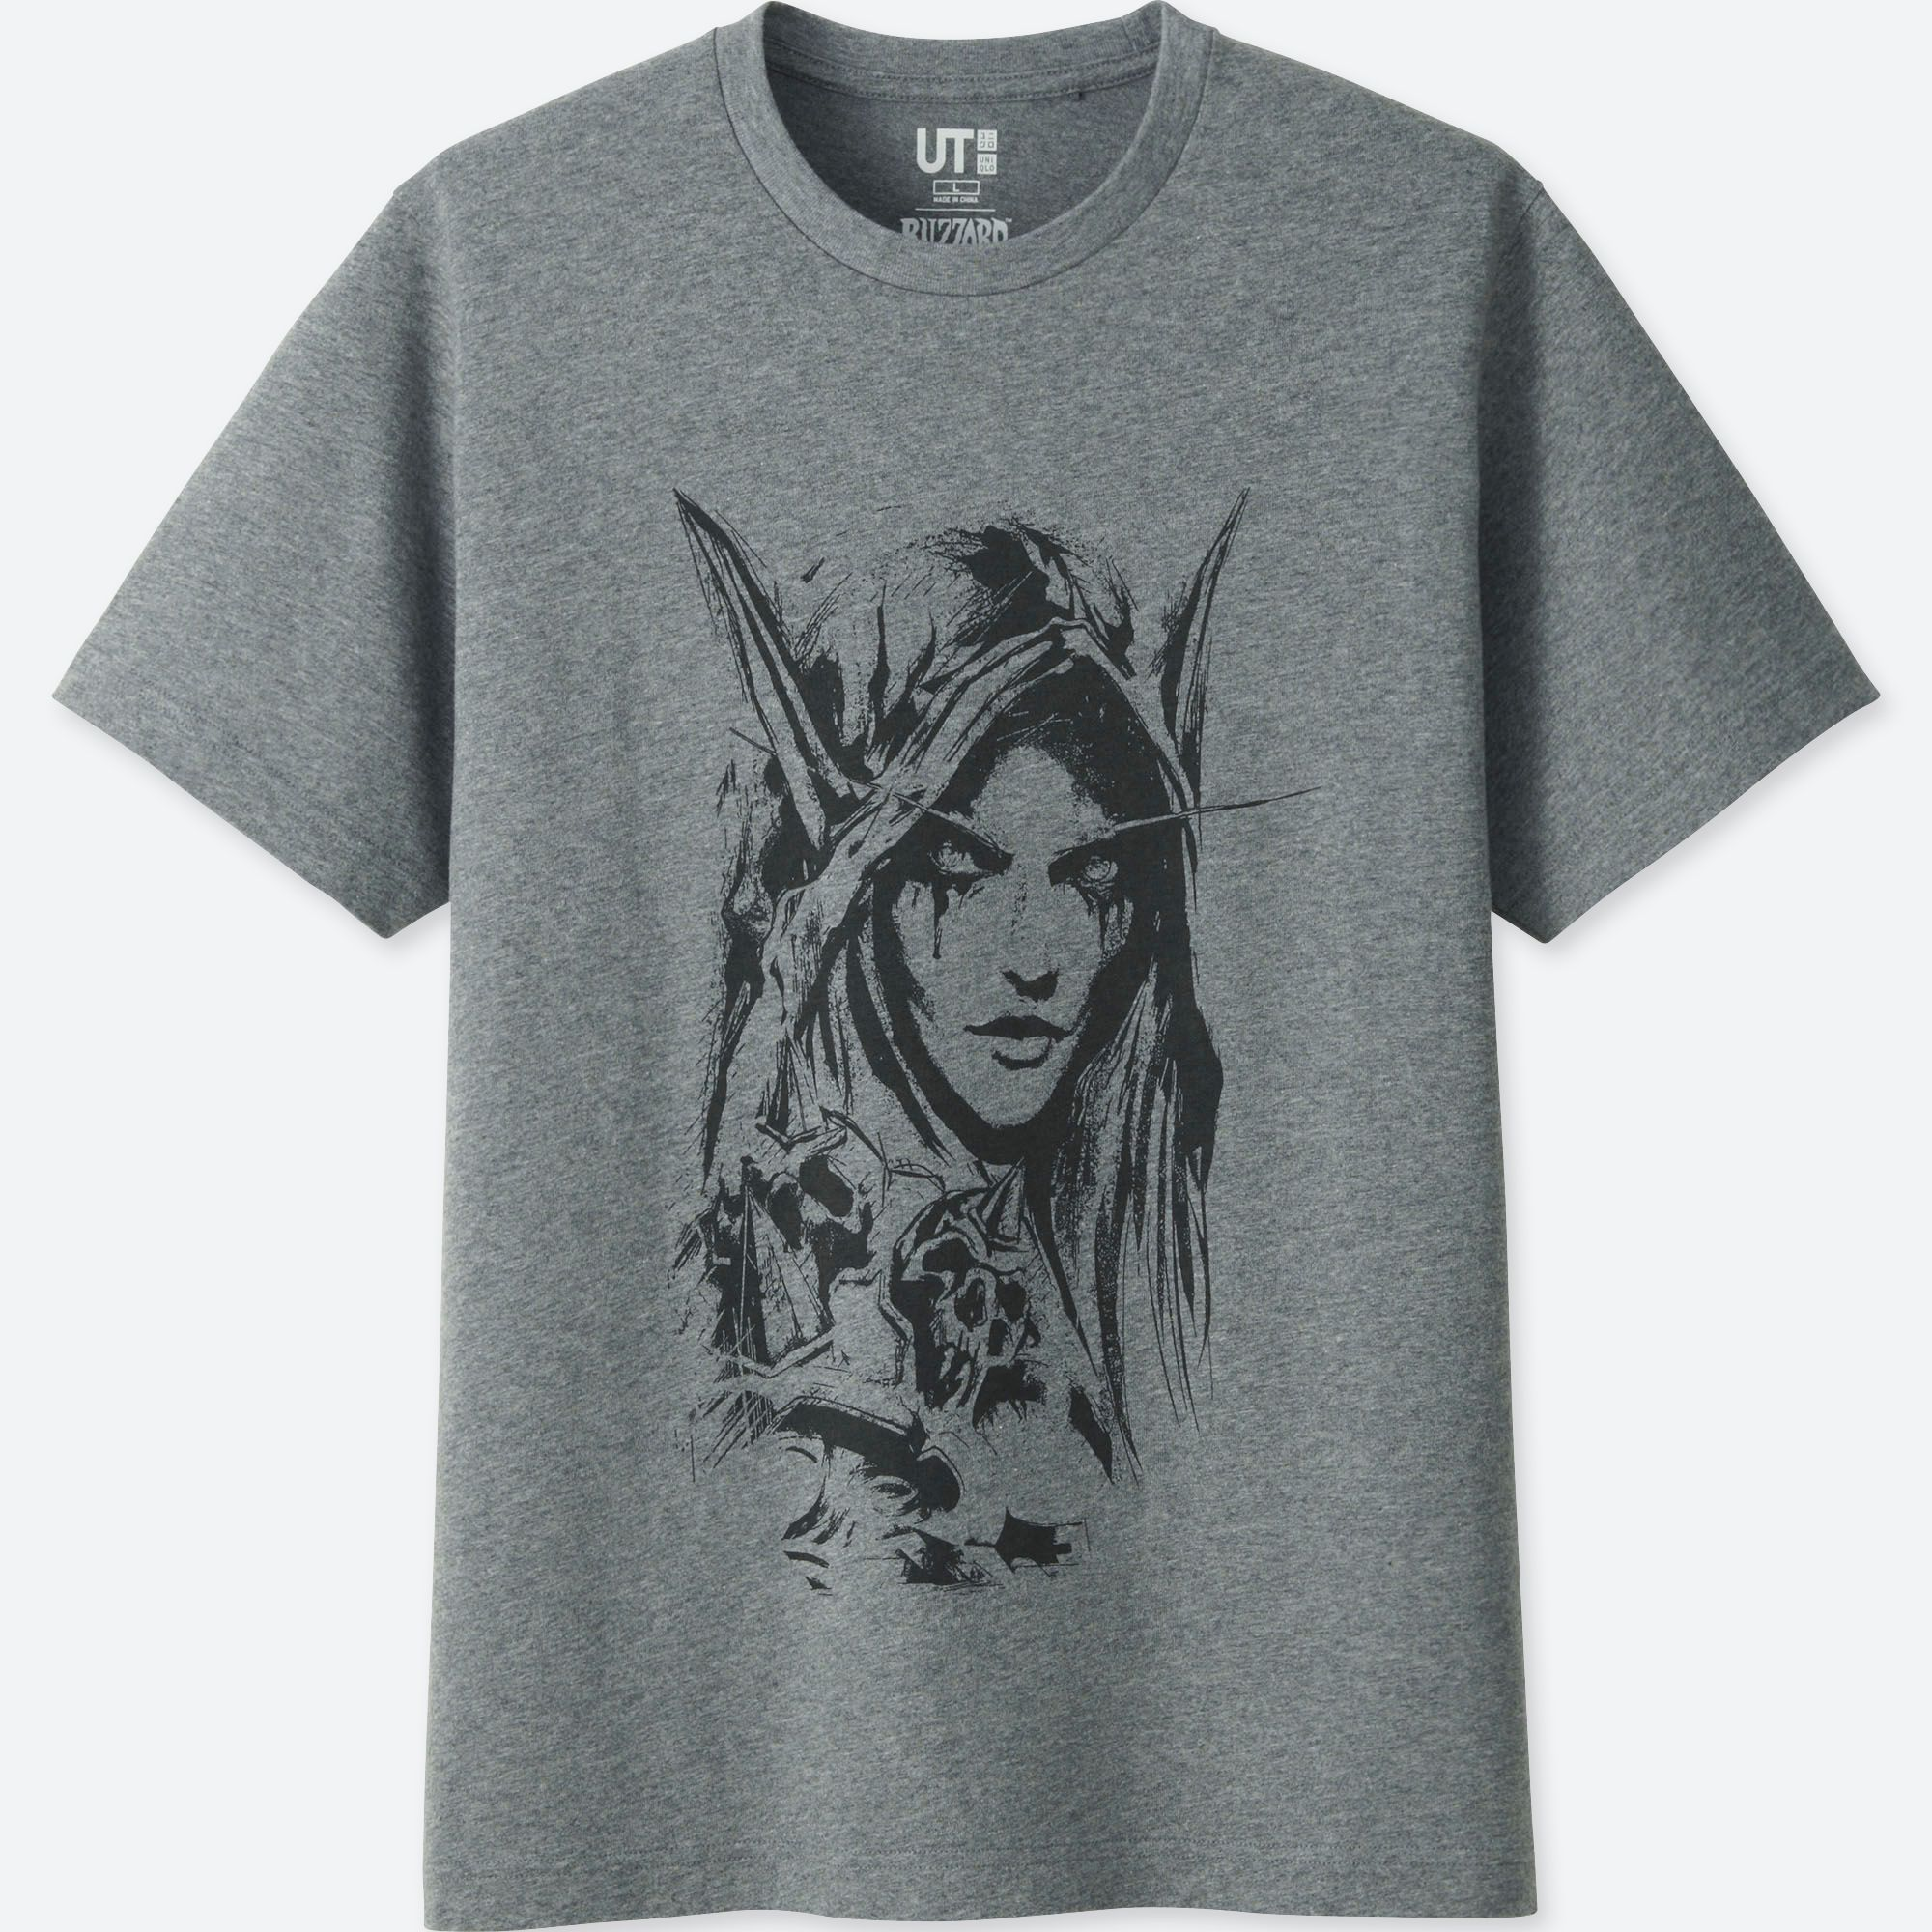 UNIQLO and Blizzard Team Up for a Magical Collection Inspired by Your Favorite Games